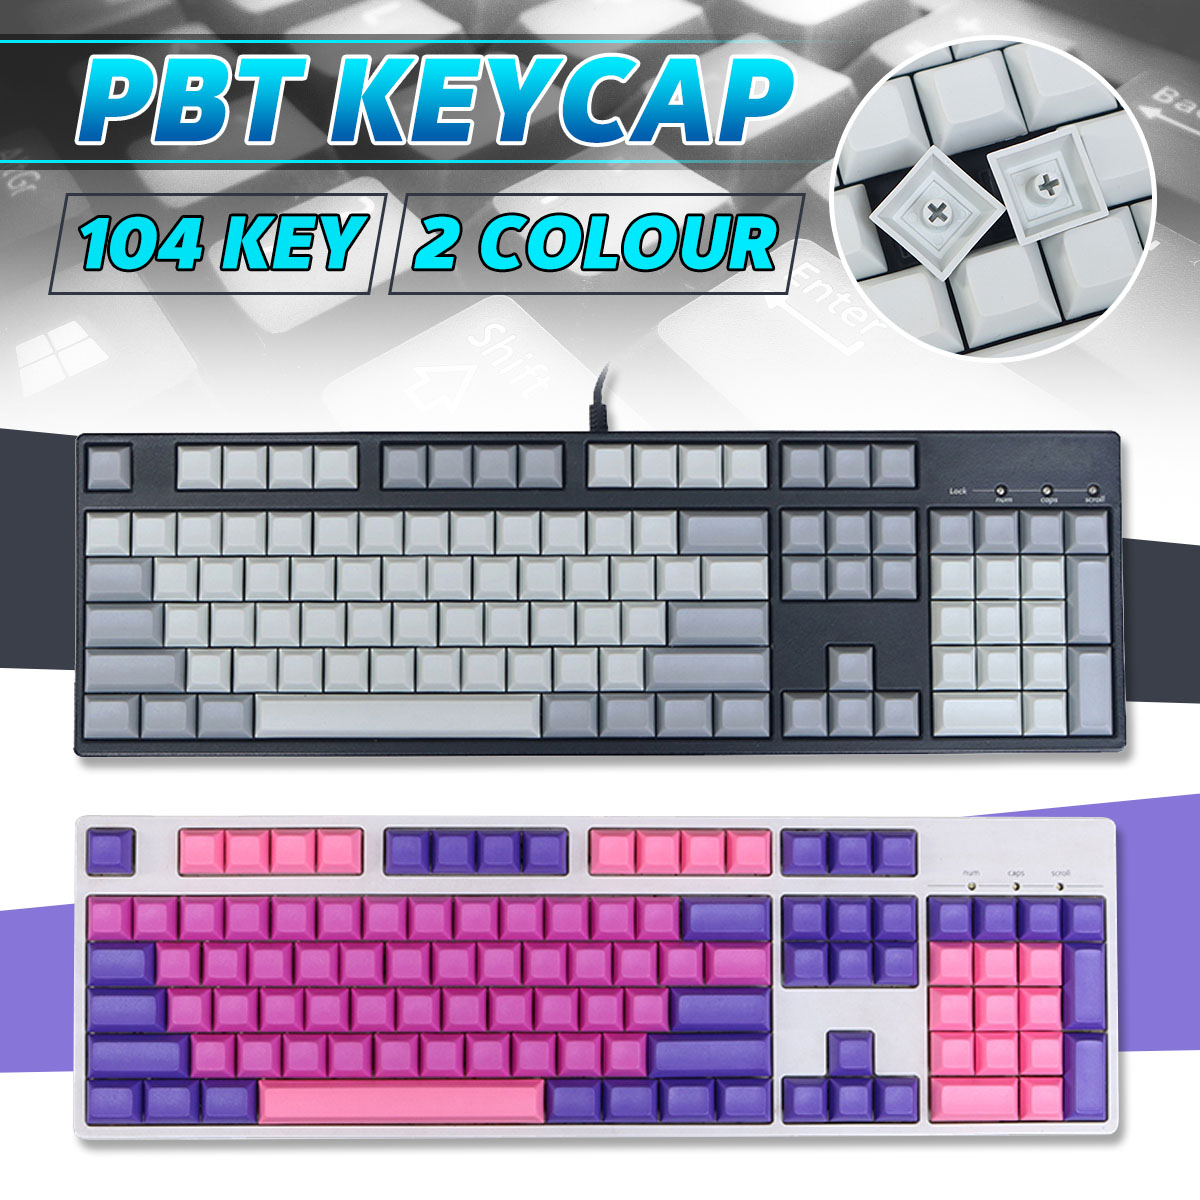 INSMA <font><b>104</b></font> Keys <font><b>PBT</b></font> Blank <font><b>Keycaps</b></font> DSA Profile Key Caps Set for Mechanical Keyboard for Gaming Mechanical Keyboard image